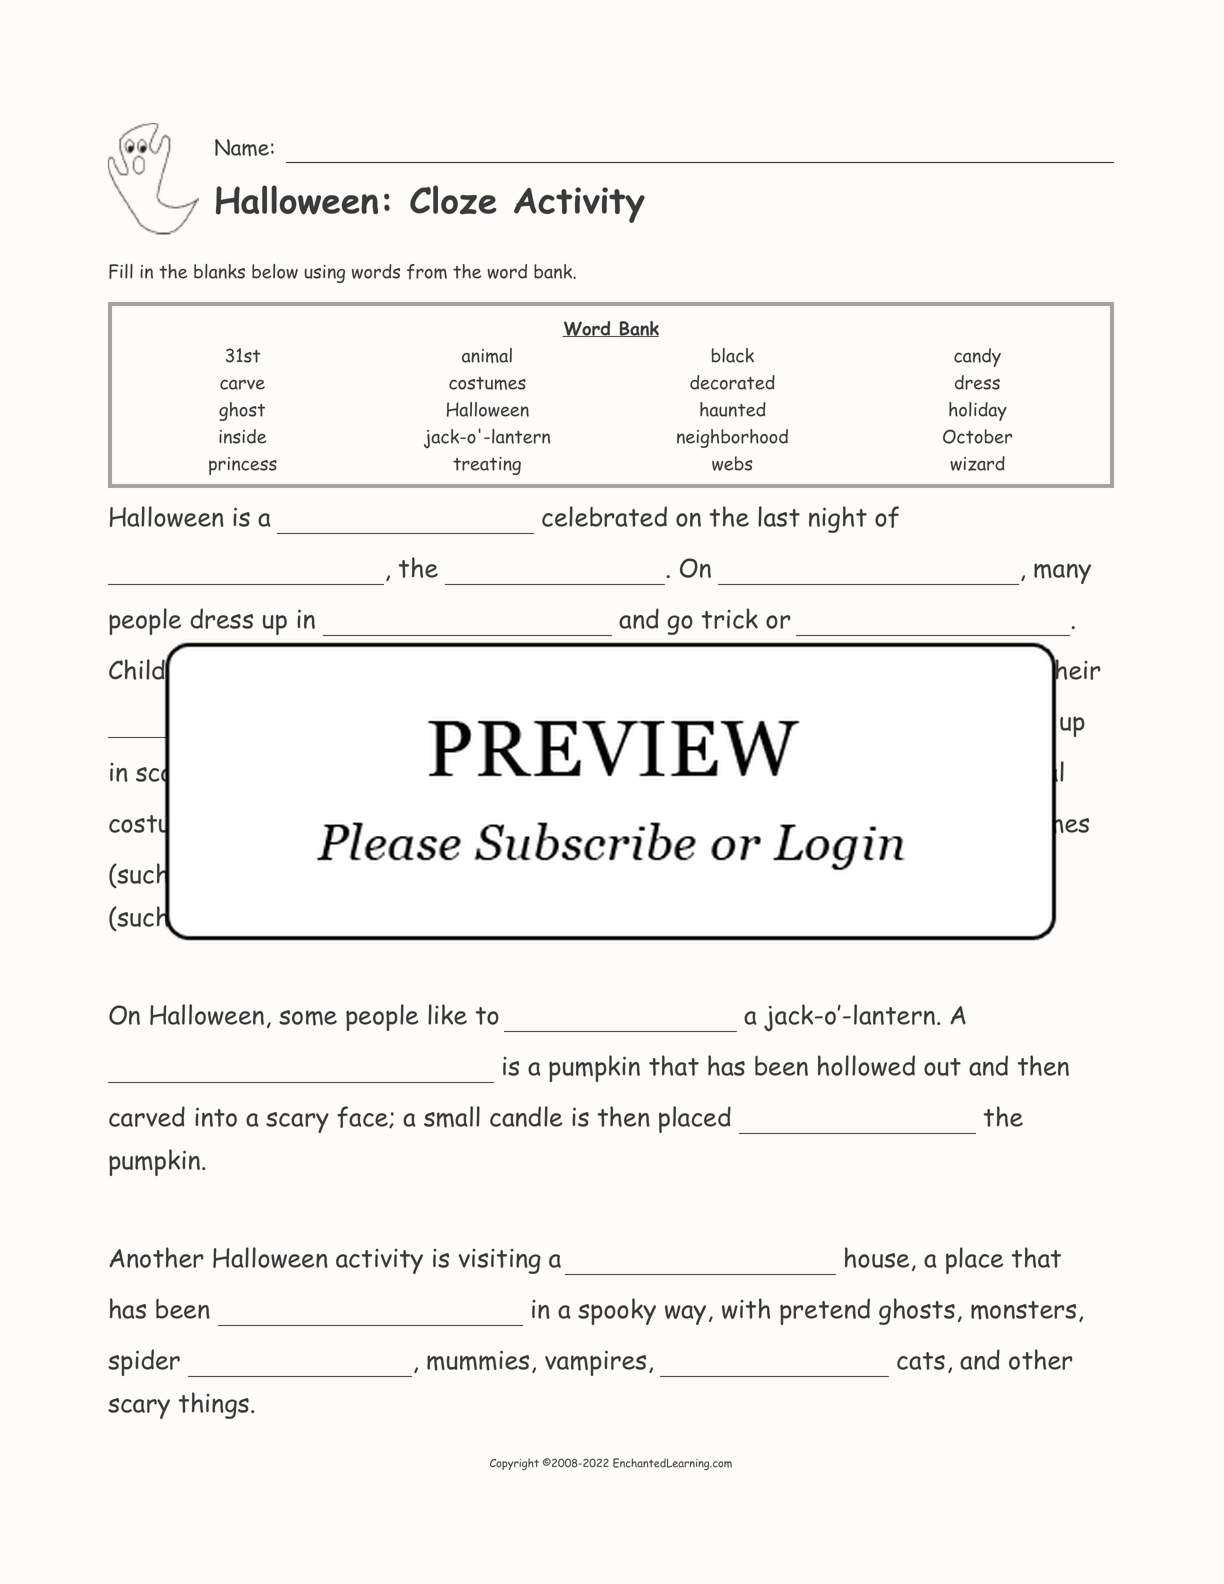 Halloween: Cloze Activity interactive worksheet page 1